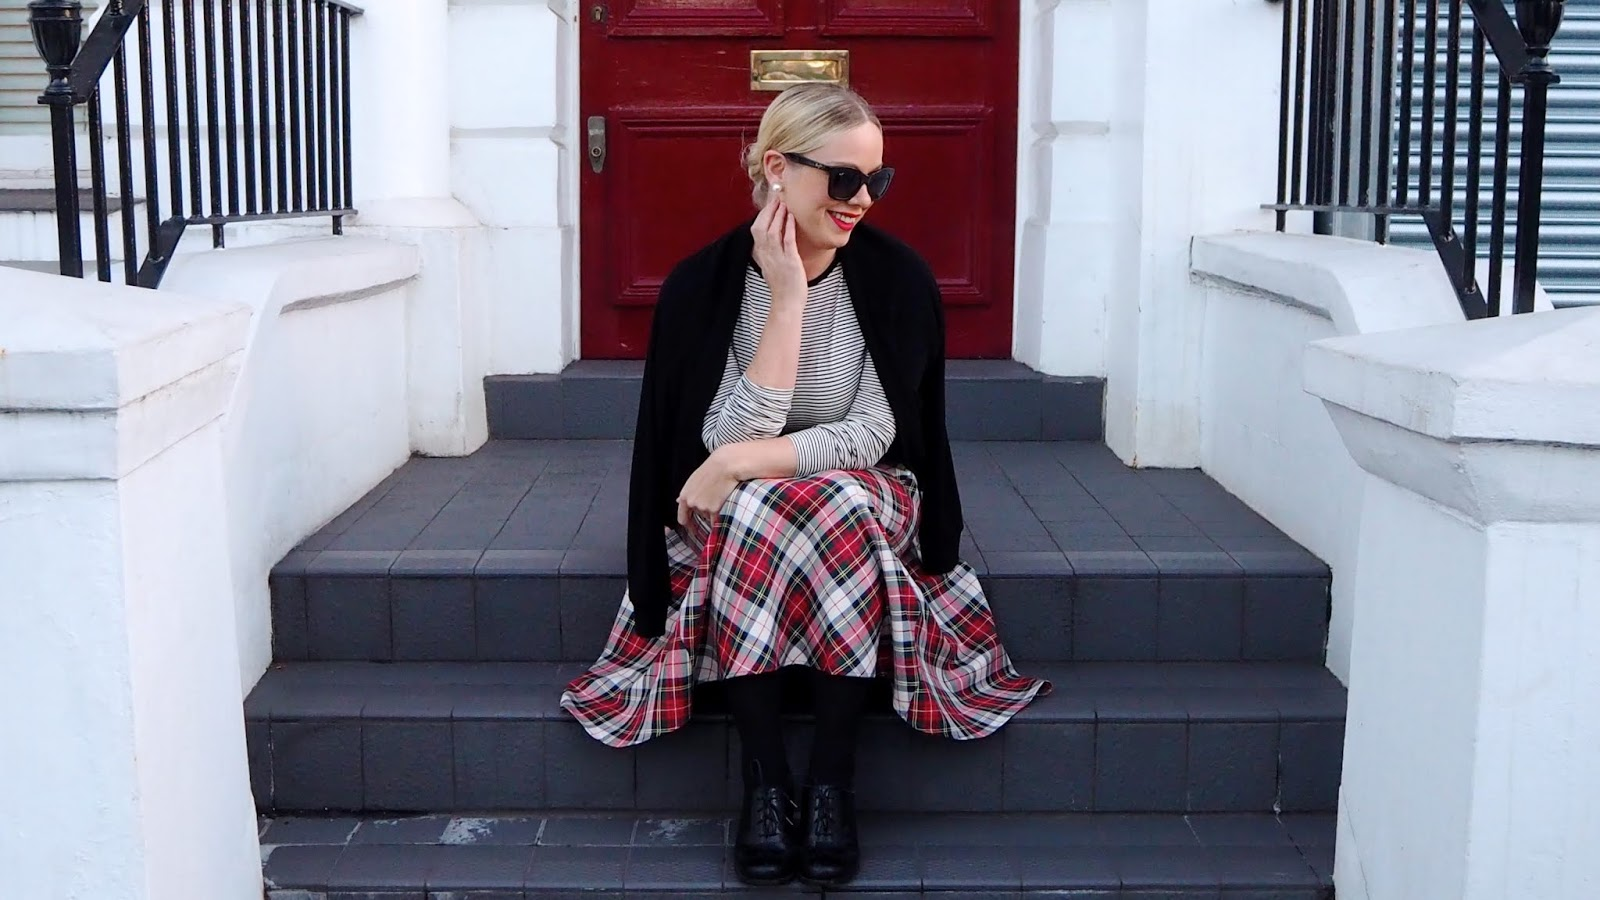 black and white striped shirt and red & green plaid skirt